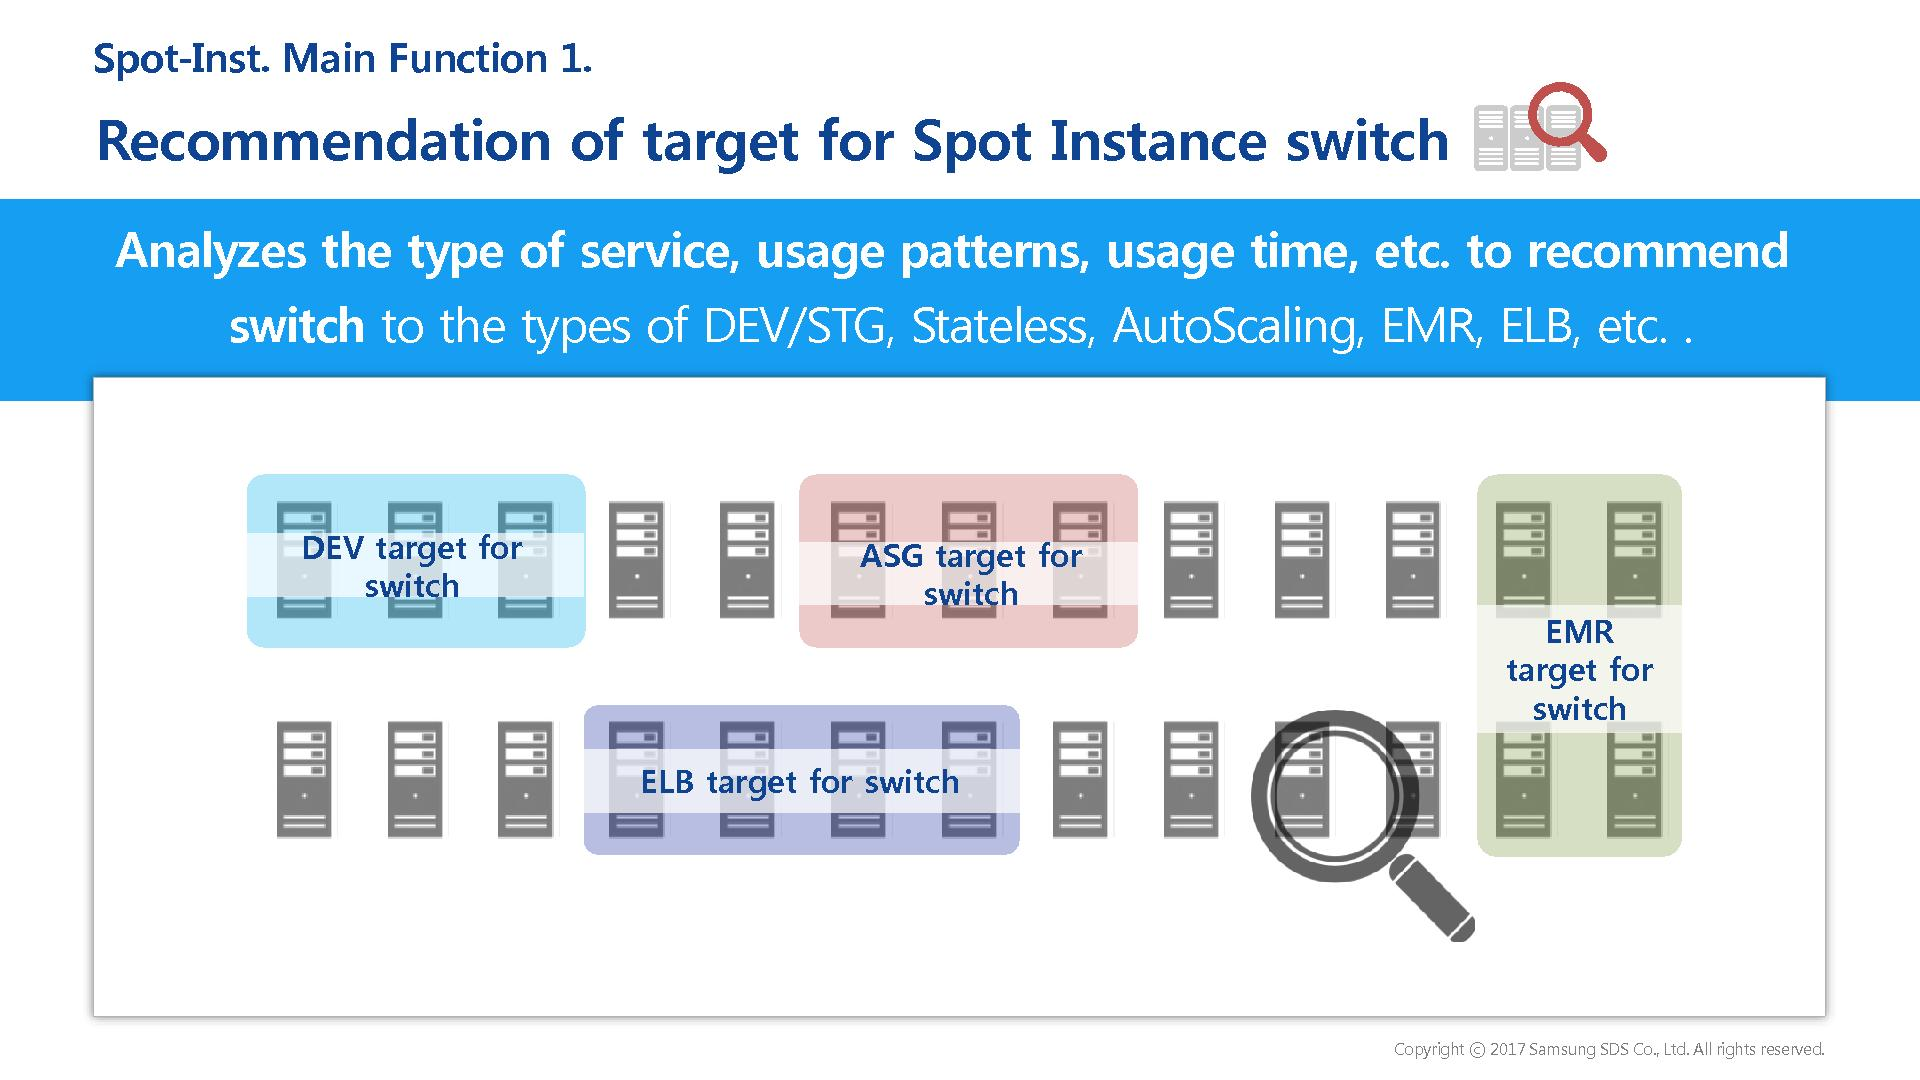 Recommendation of target for Spot Instance switch